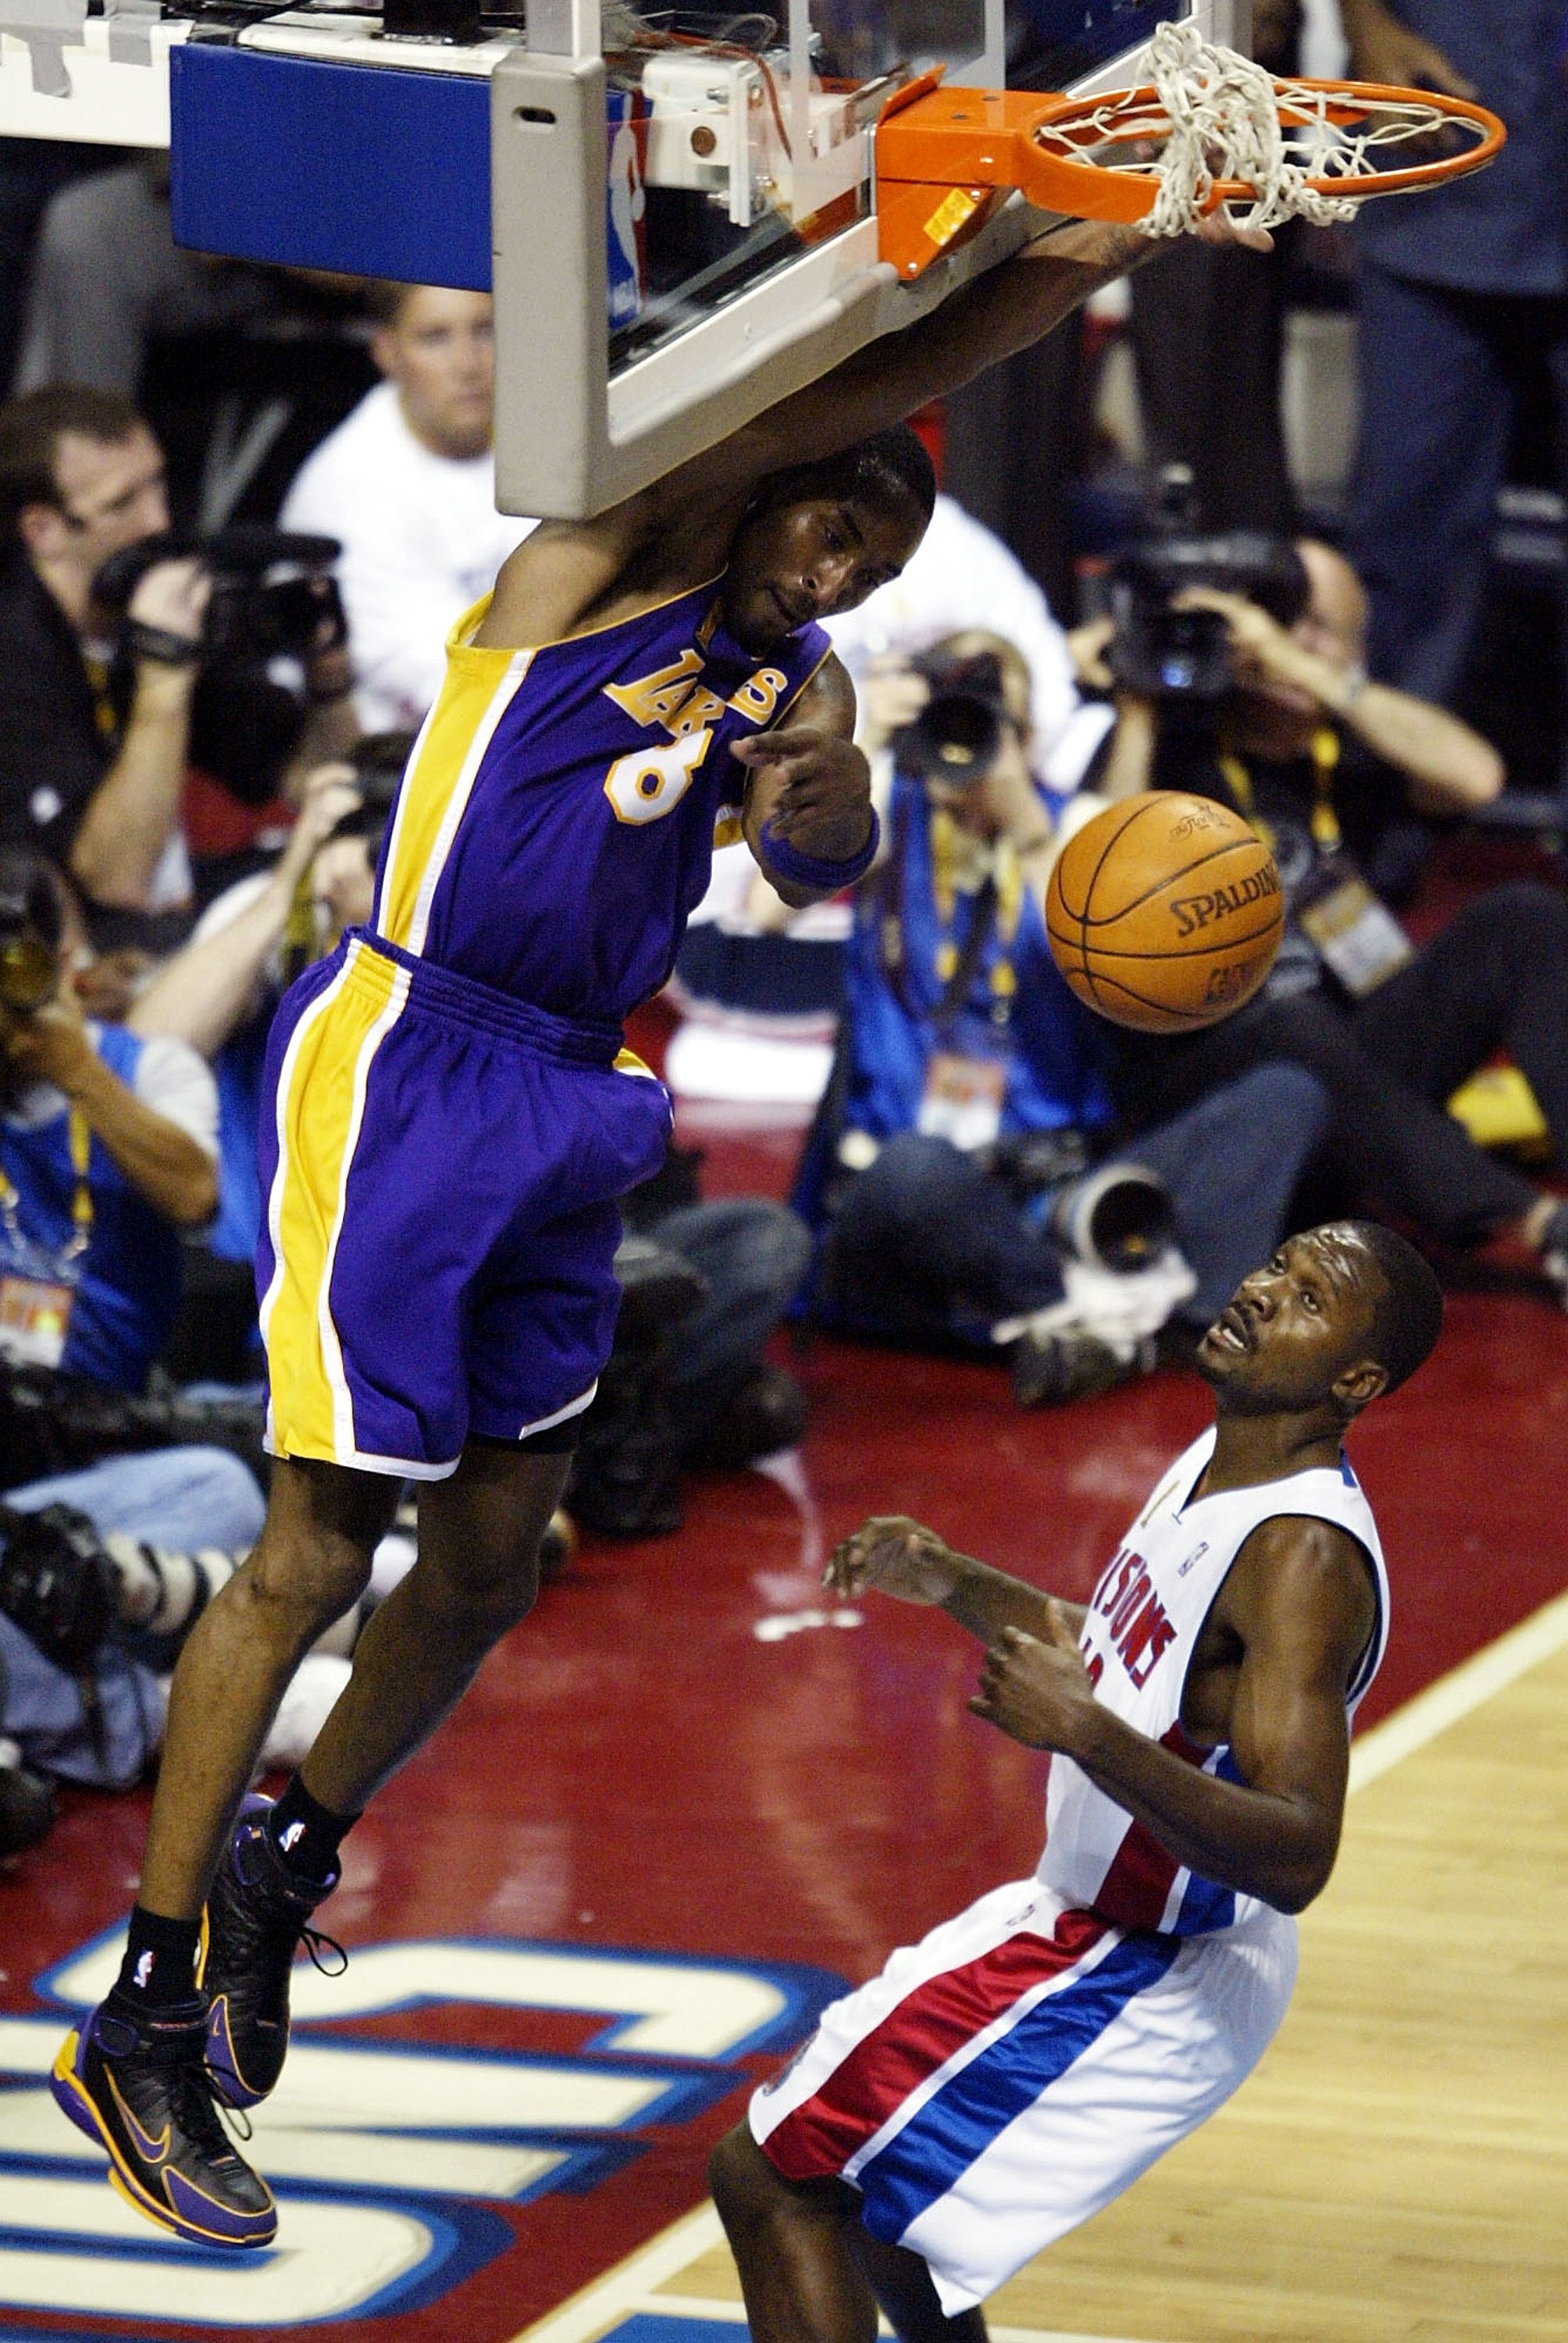 Hunter admired Kobe Bryant's relentless work ethic - and here saw the results up close.